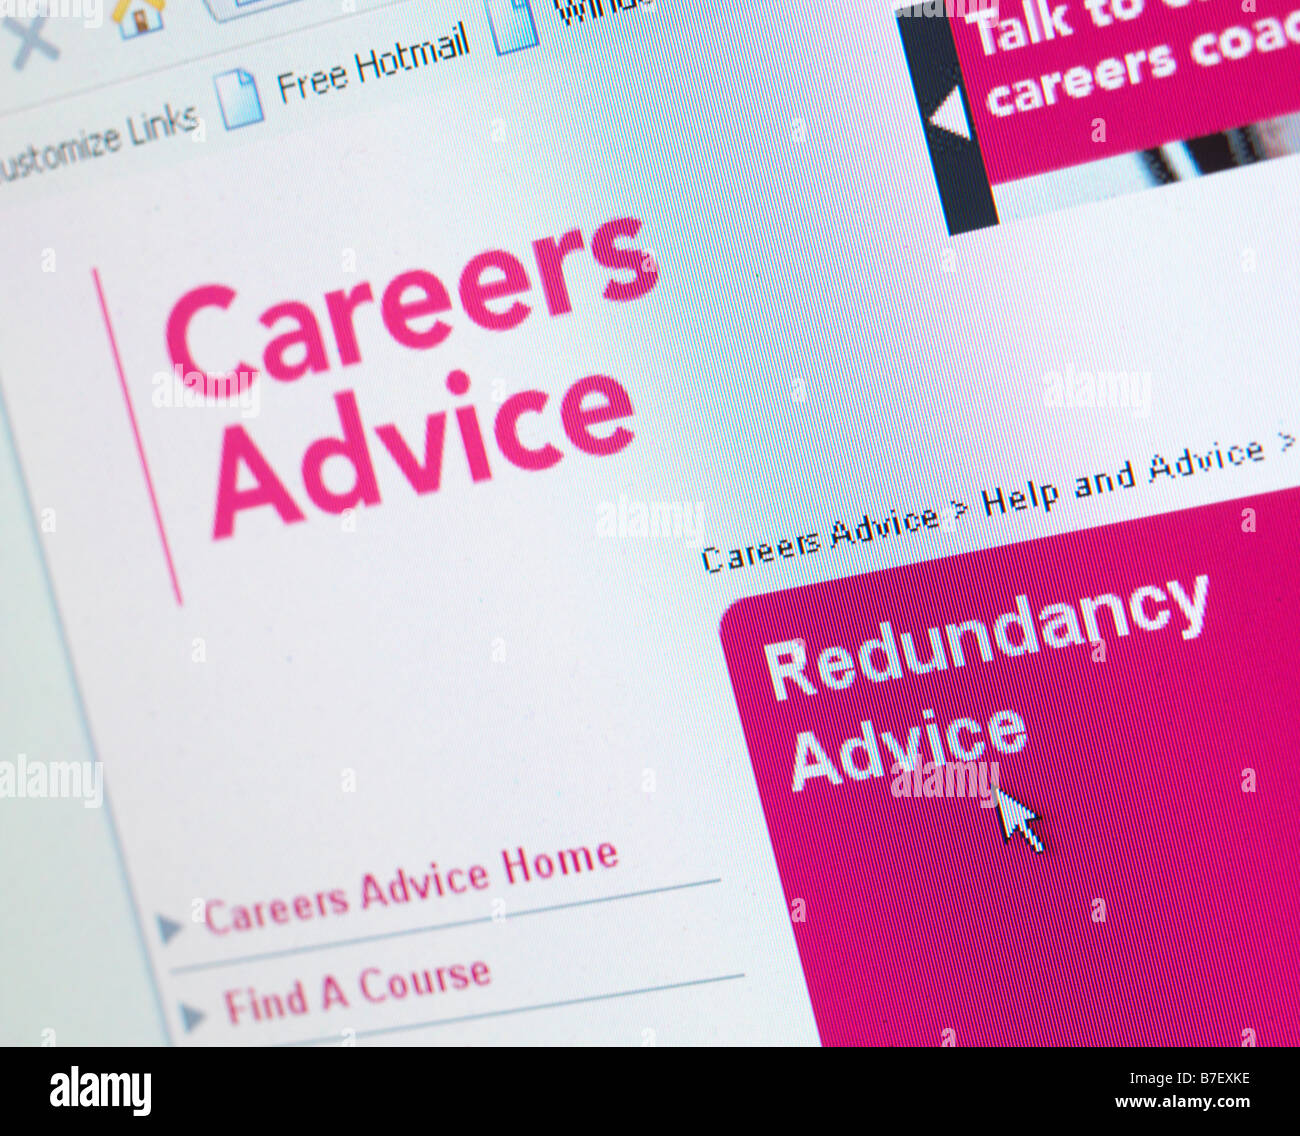 WEB SITE UK JOB REDUNDANCY ADVICE HELP - Stock Image